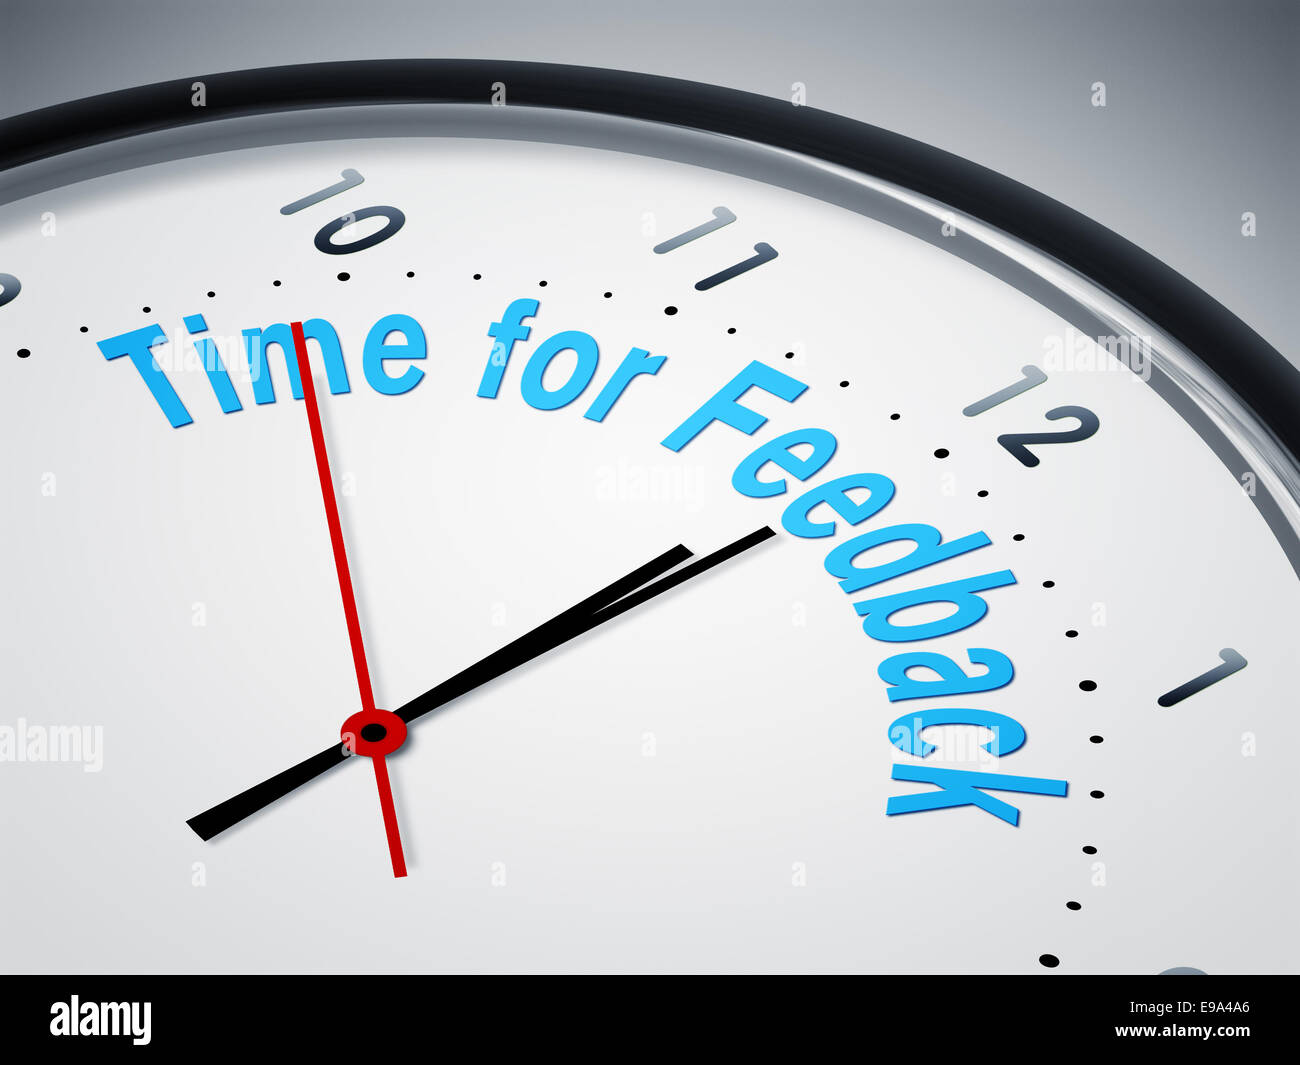 time for feedback - Stock Image